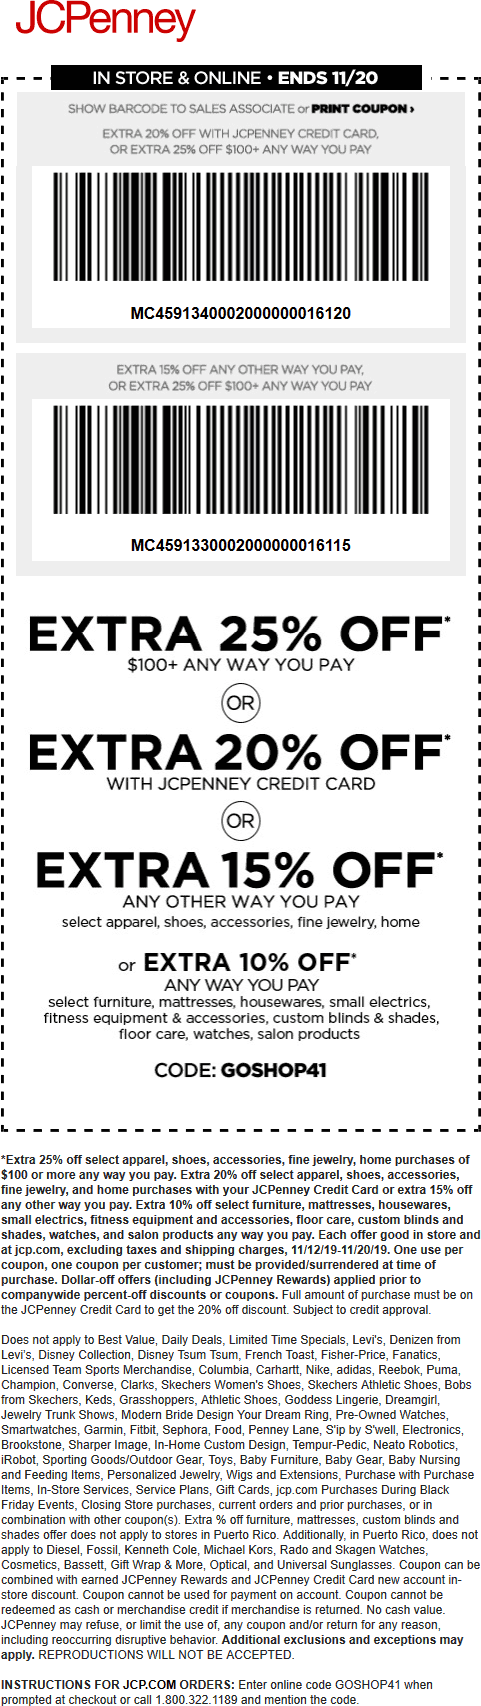 JCPenney Coupon January 2020 15-25% off at JCPenney, or online via promo code GOSHOP41